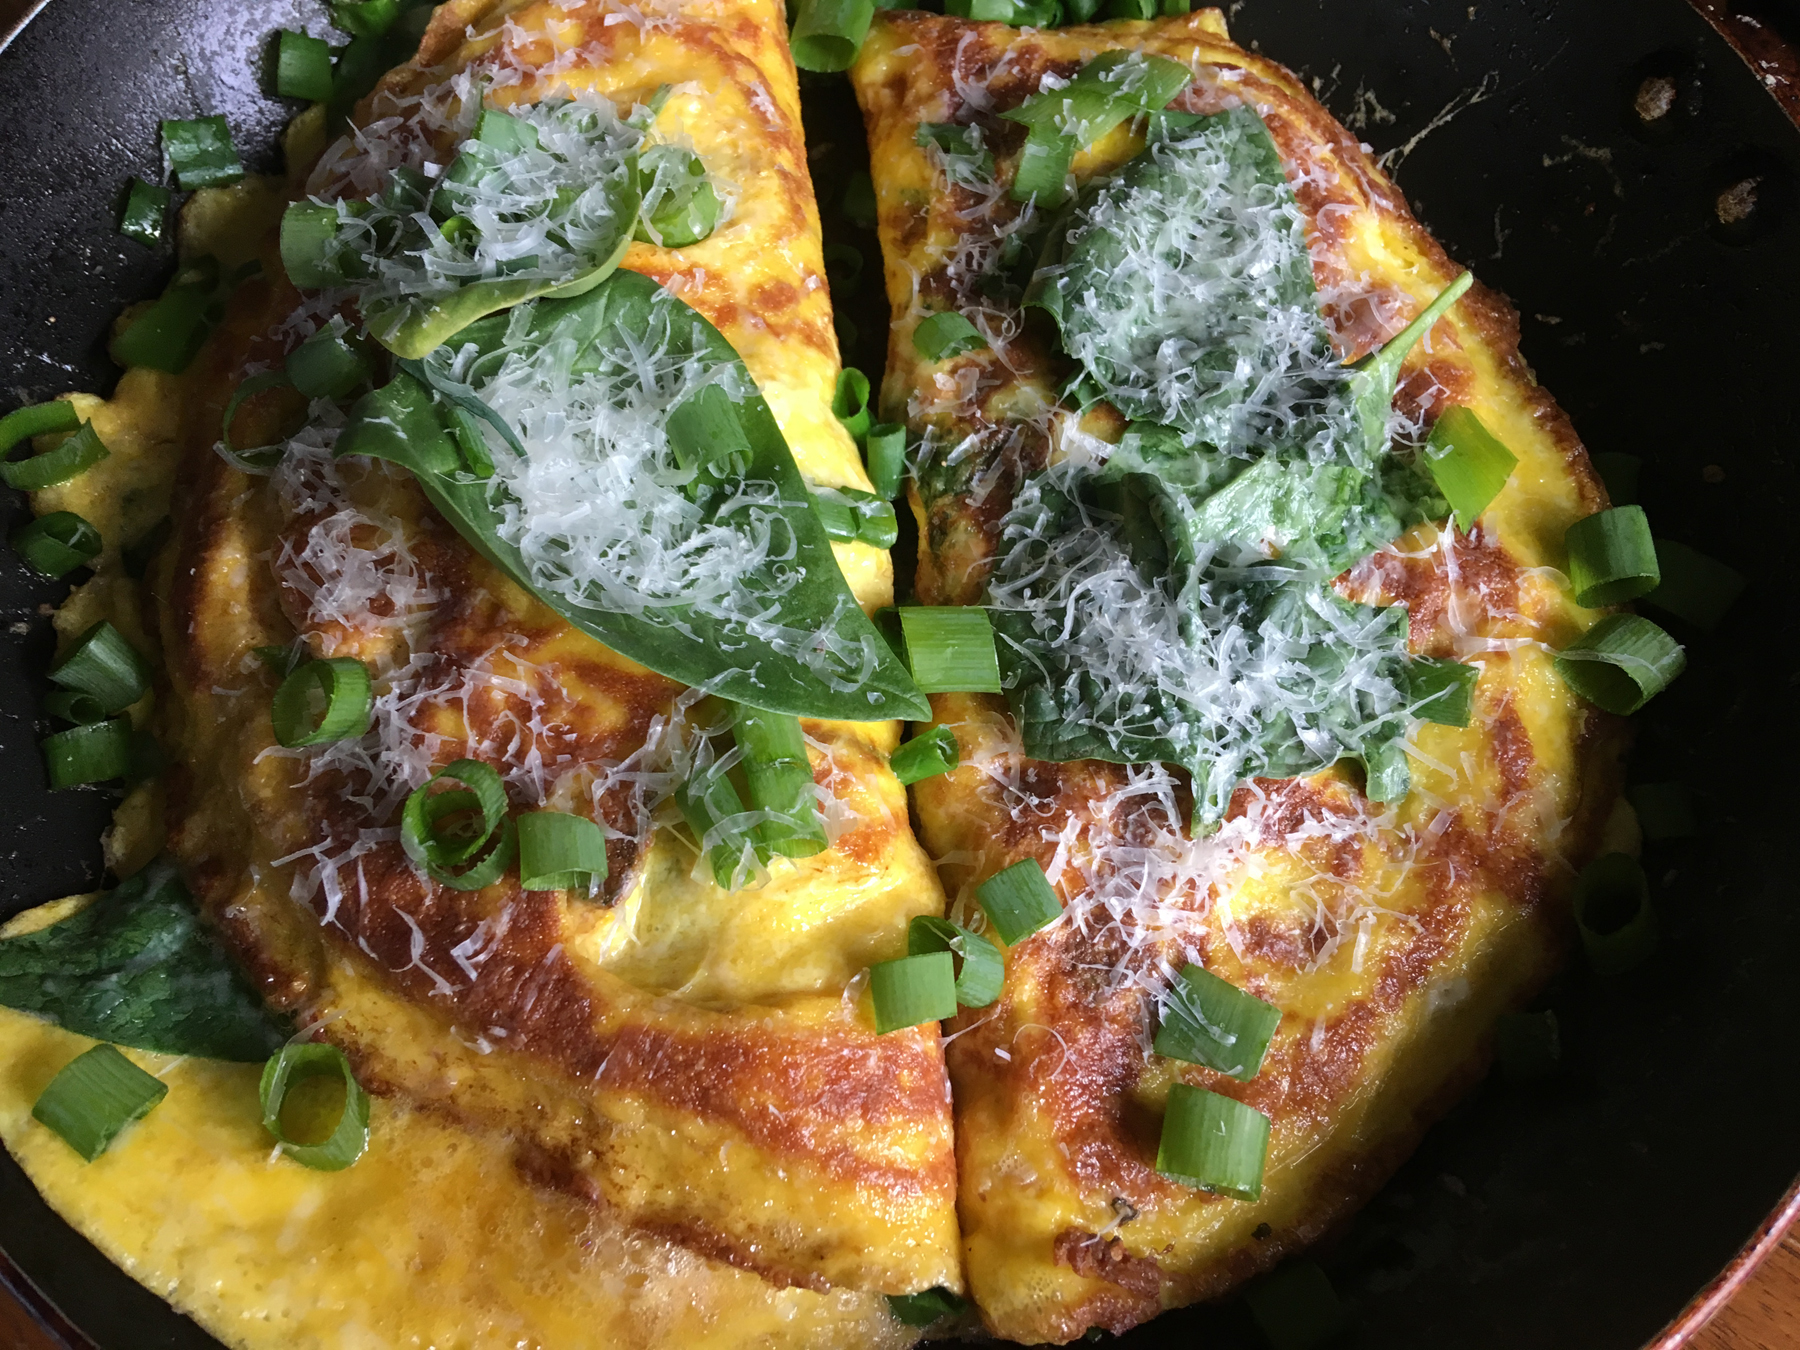 Jason worked as a cook at Family Ties, in Townville, from age 16 until his mid 20s. In those years, he learned to cook from some wonderful people. We've been craving the farm's greens. This omelette is filled with PTF spinach, green onions, and chives. The eggs came from Grandma Darlene's chickens.